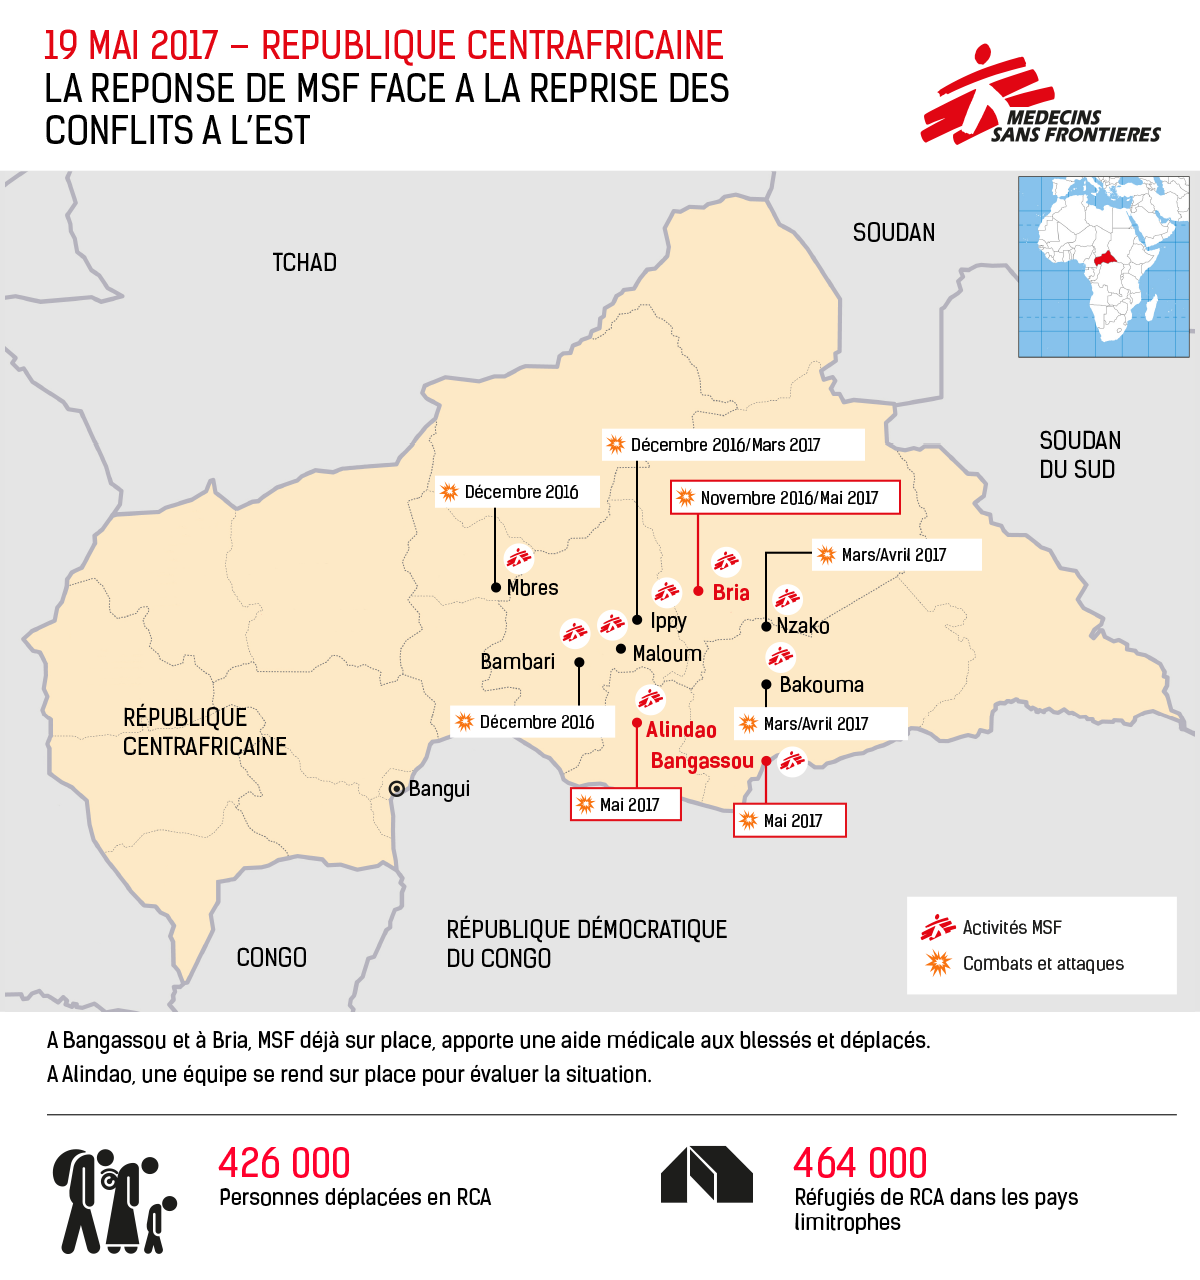 Violence In Central African Republic Latest Updates And The MSF Response